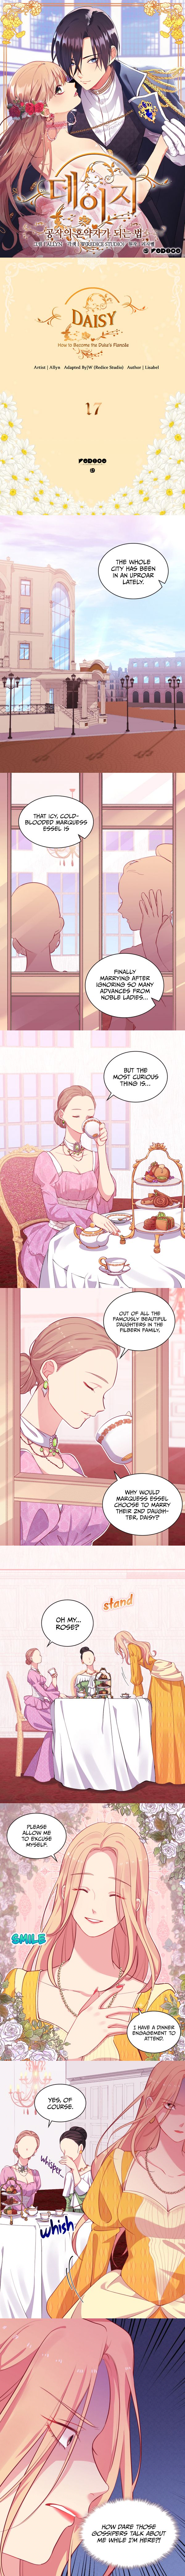 Daisy: How To Become The Duke's Fiancée - chapter 17 - #2